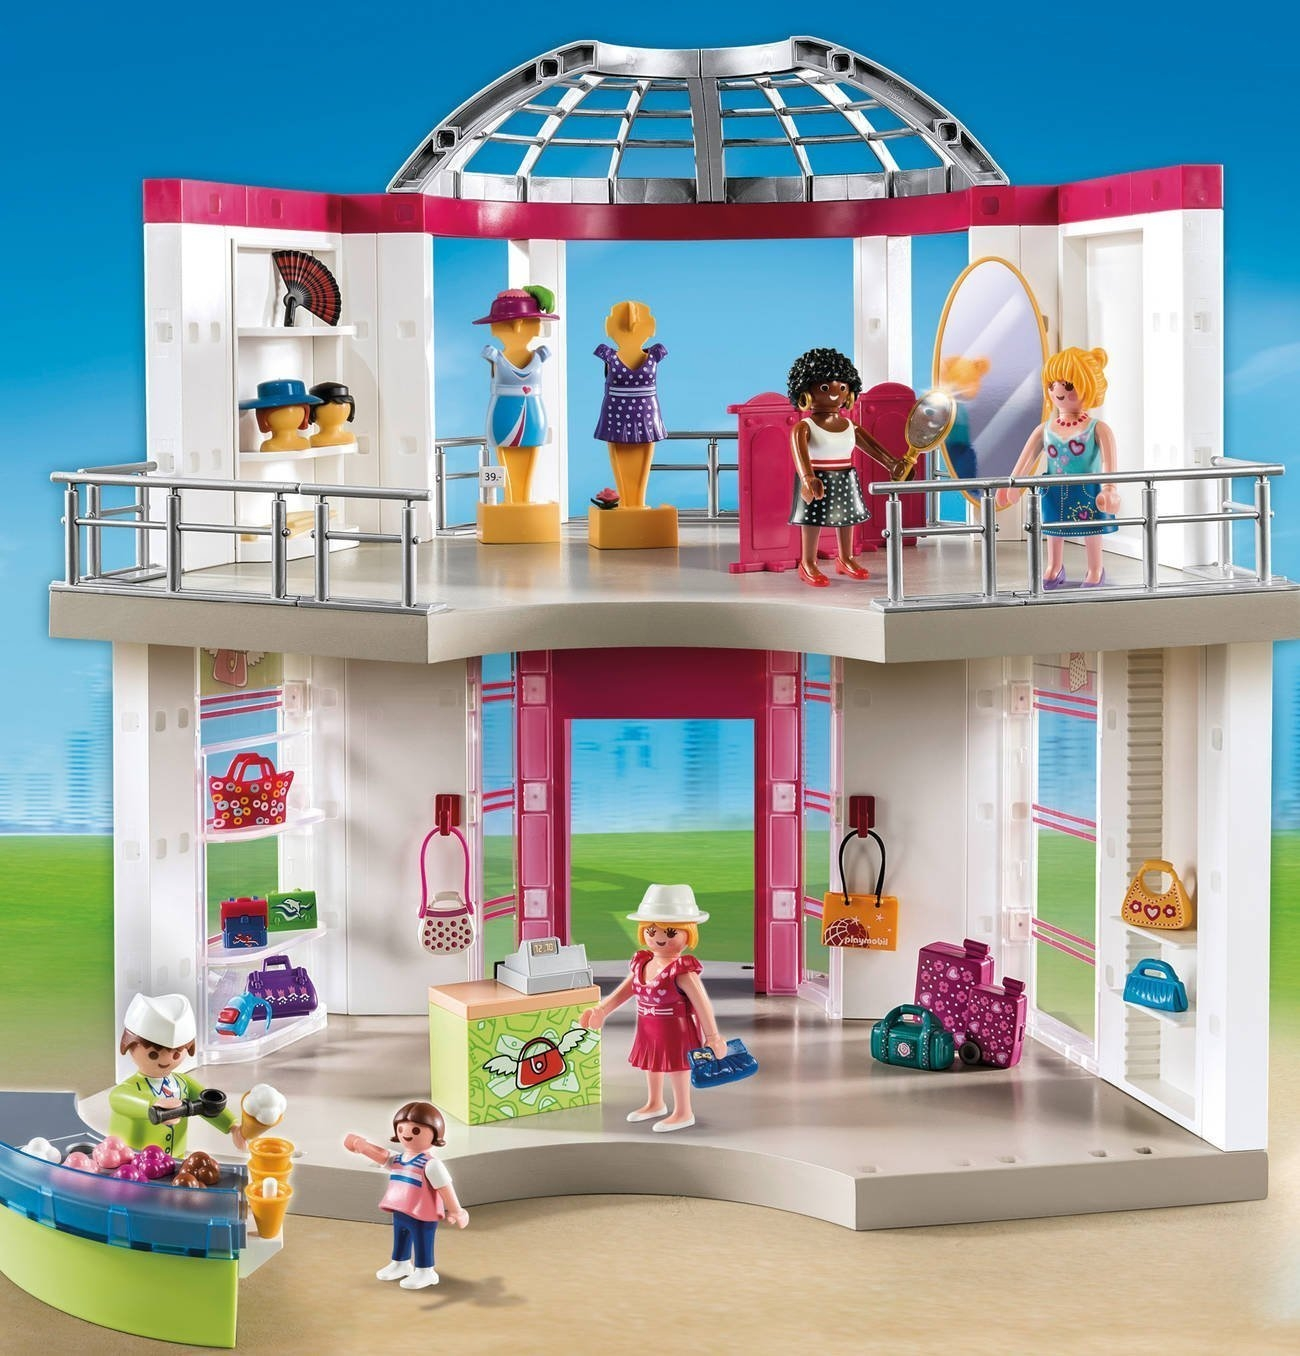 Playmobil City Life Küche Müller Playmobil City Life 5499 Modeboetiek Chipo